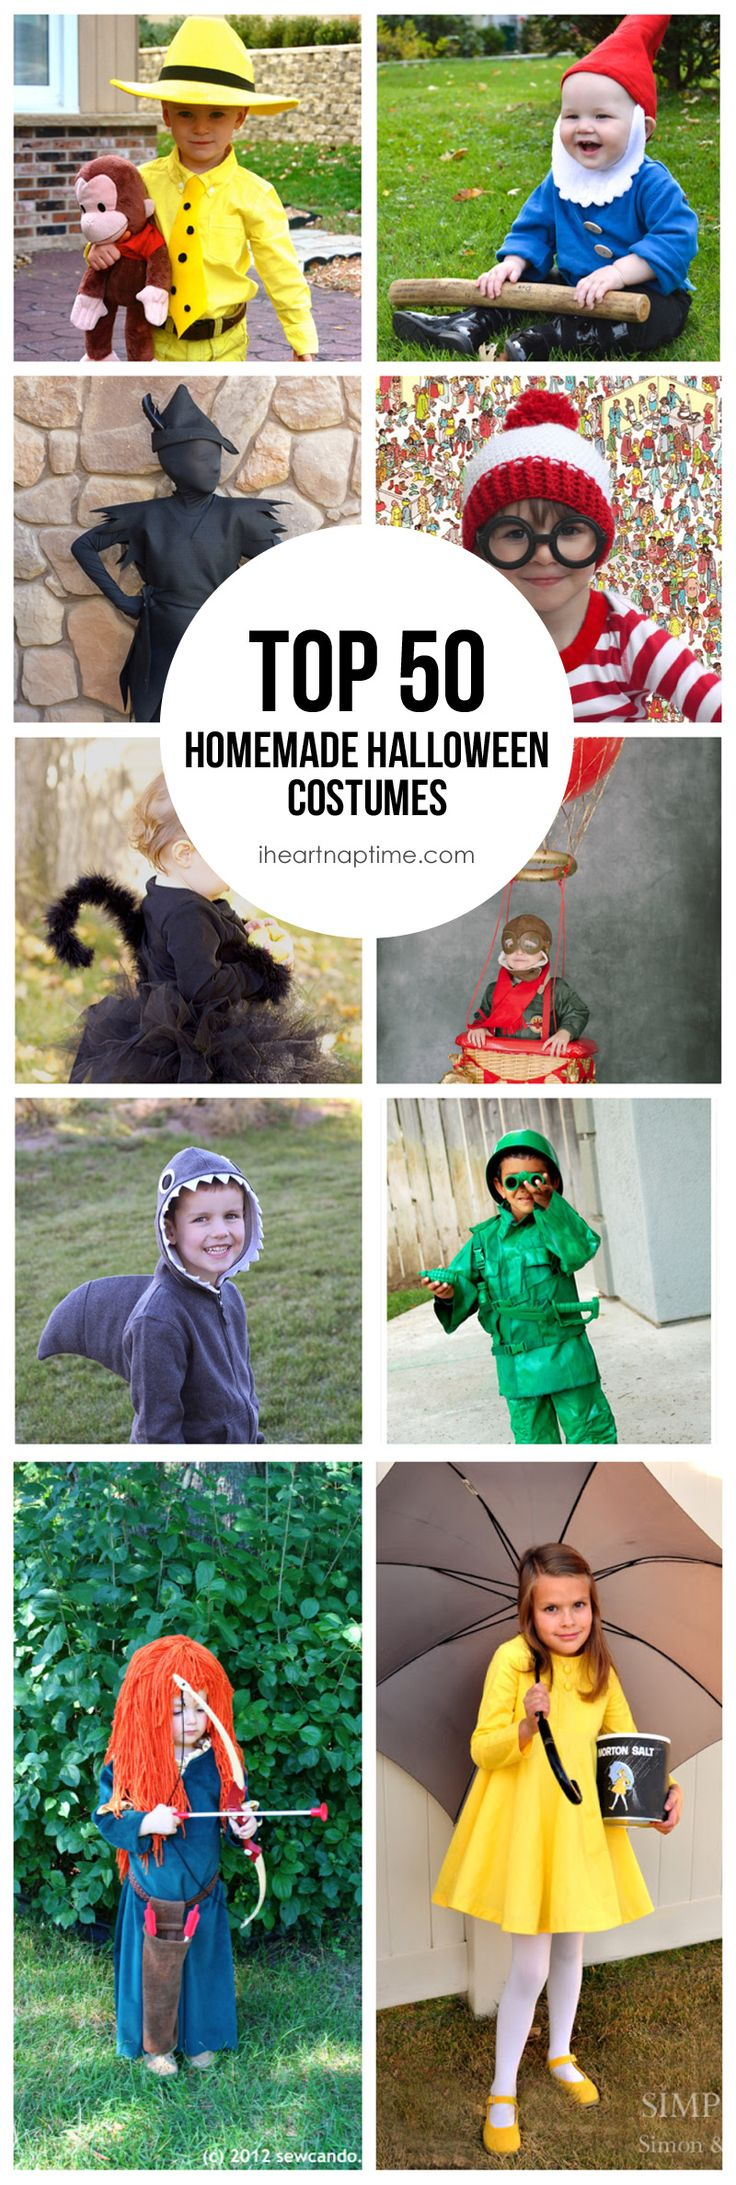 Top 50 Homemade Costumes! Great ideas for Halloween.